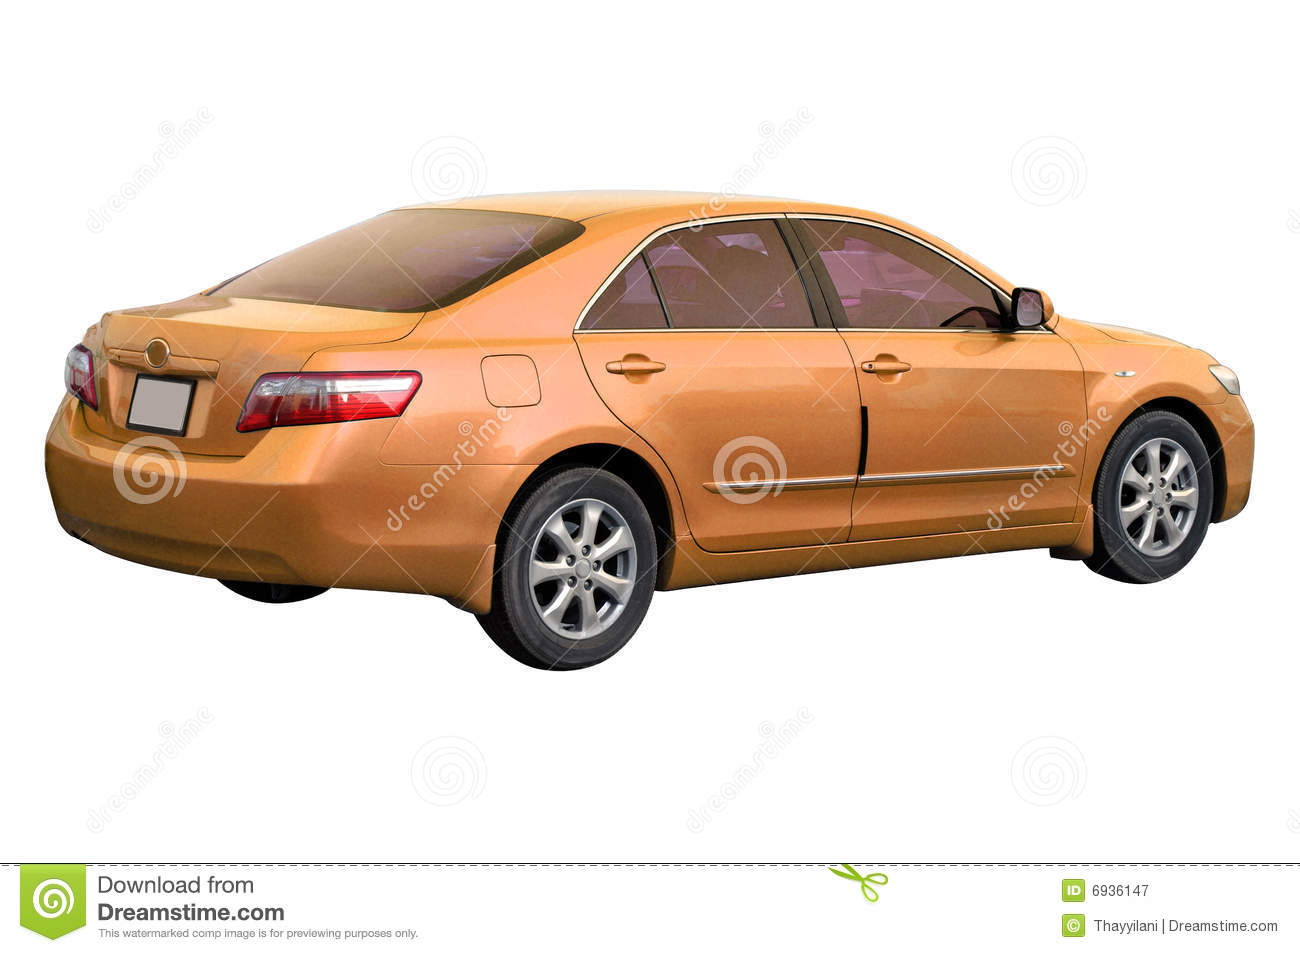 orange toyota camry 2008 stock image image of colour 6936147. Black Bedroom Furniture Sets. Home Design Ideas